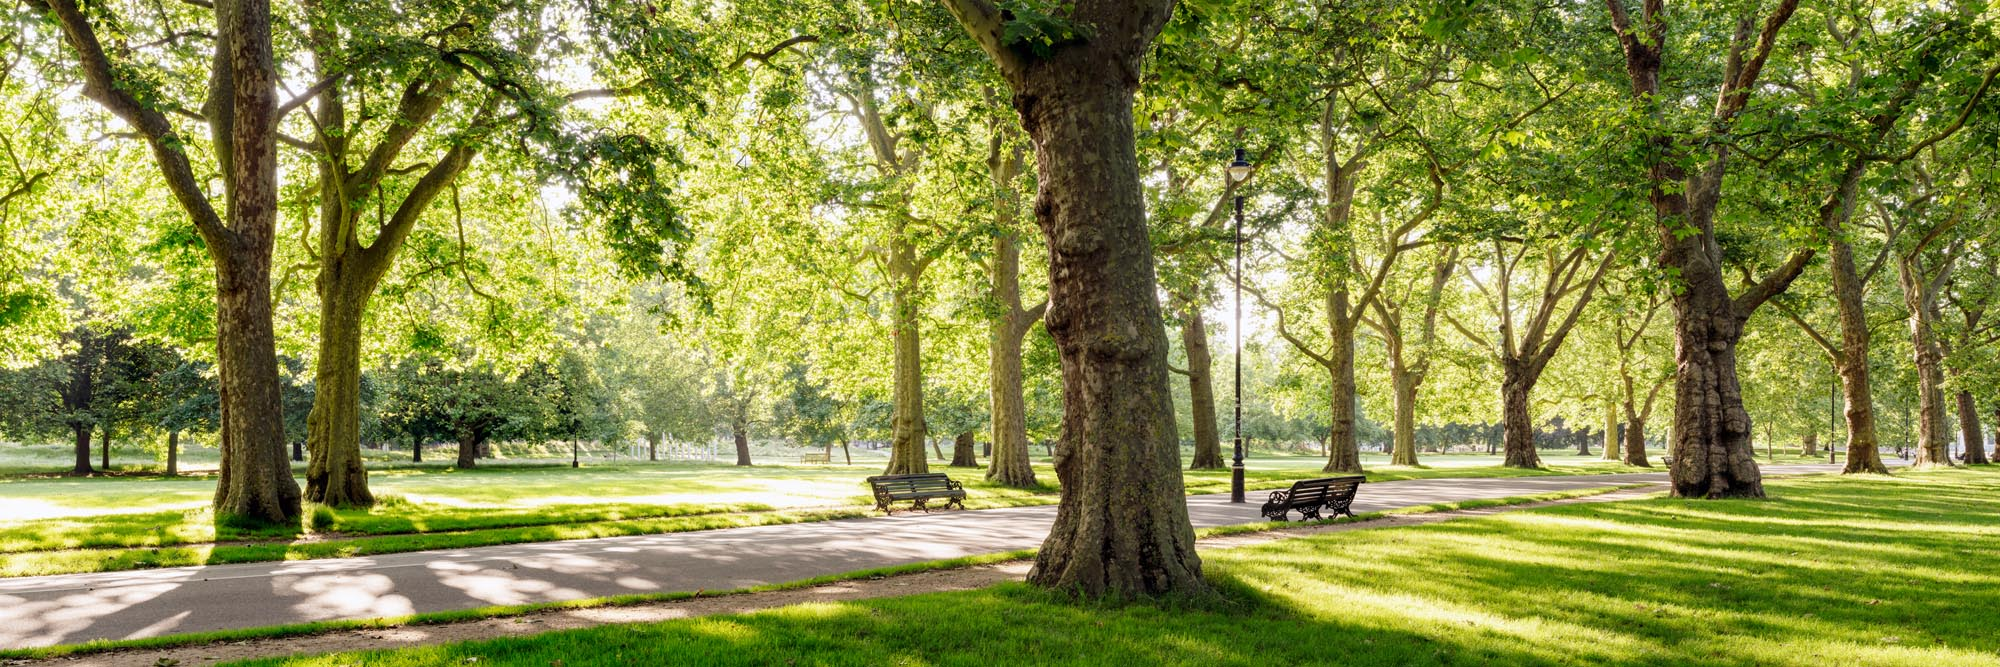 a morning in Hyde park